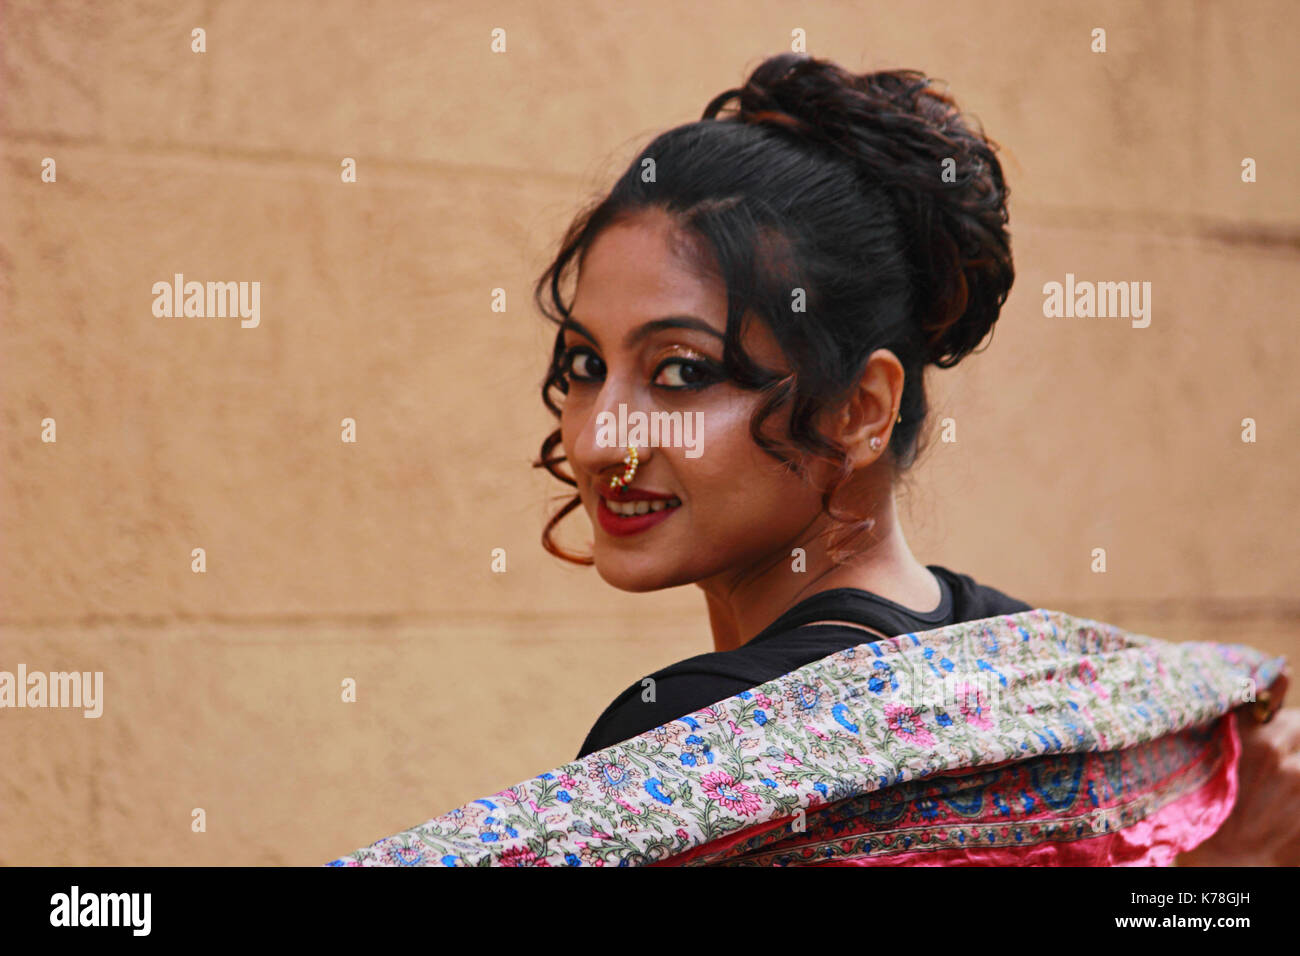 Close Up Of Indian Woman With Nose Ring Stock Photo 159384585 Alamy